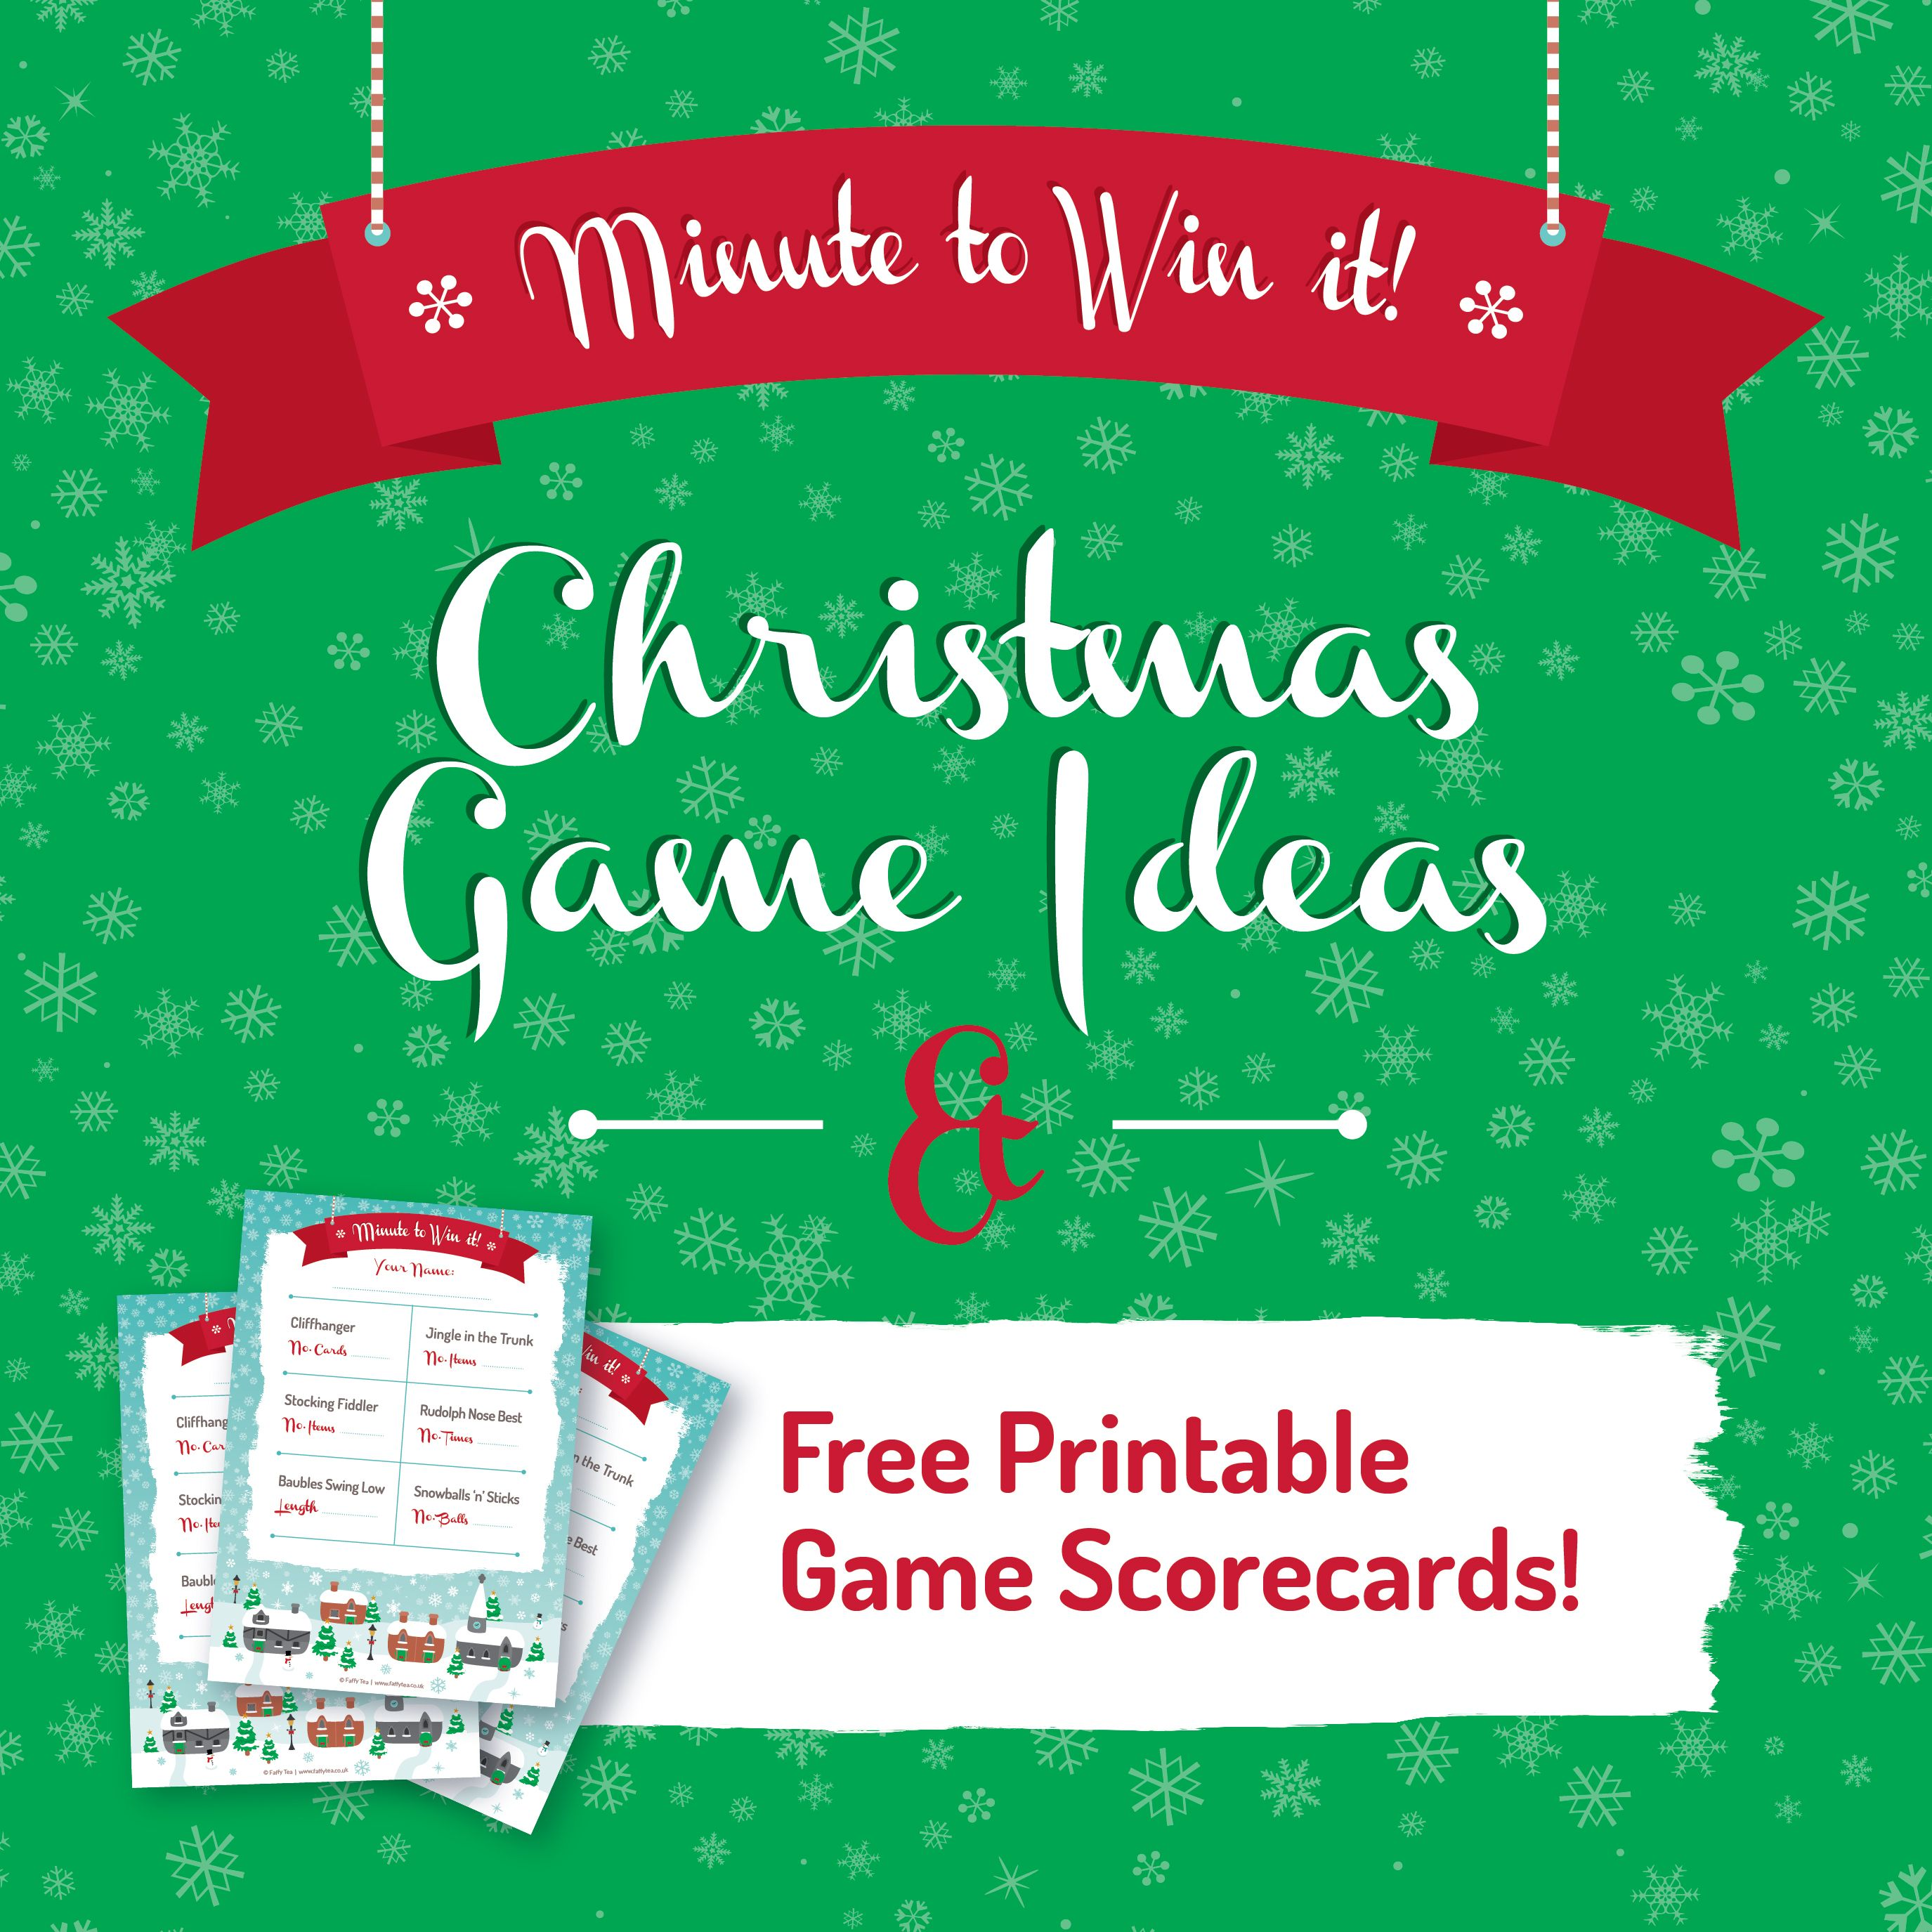 Christmas Family Party Games: Minute To Win It Group Games Ideas